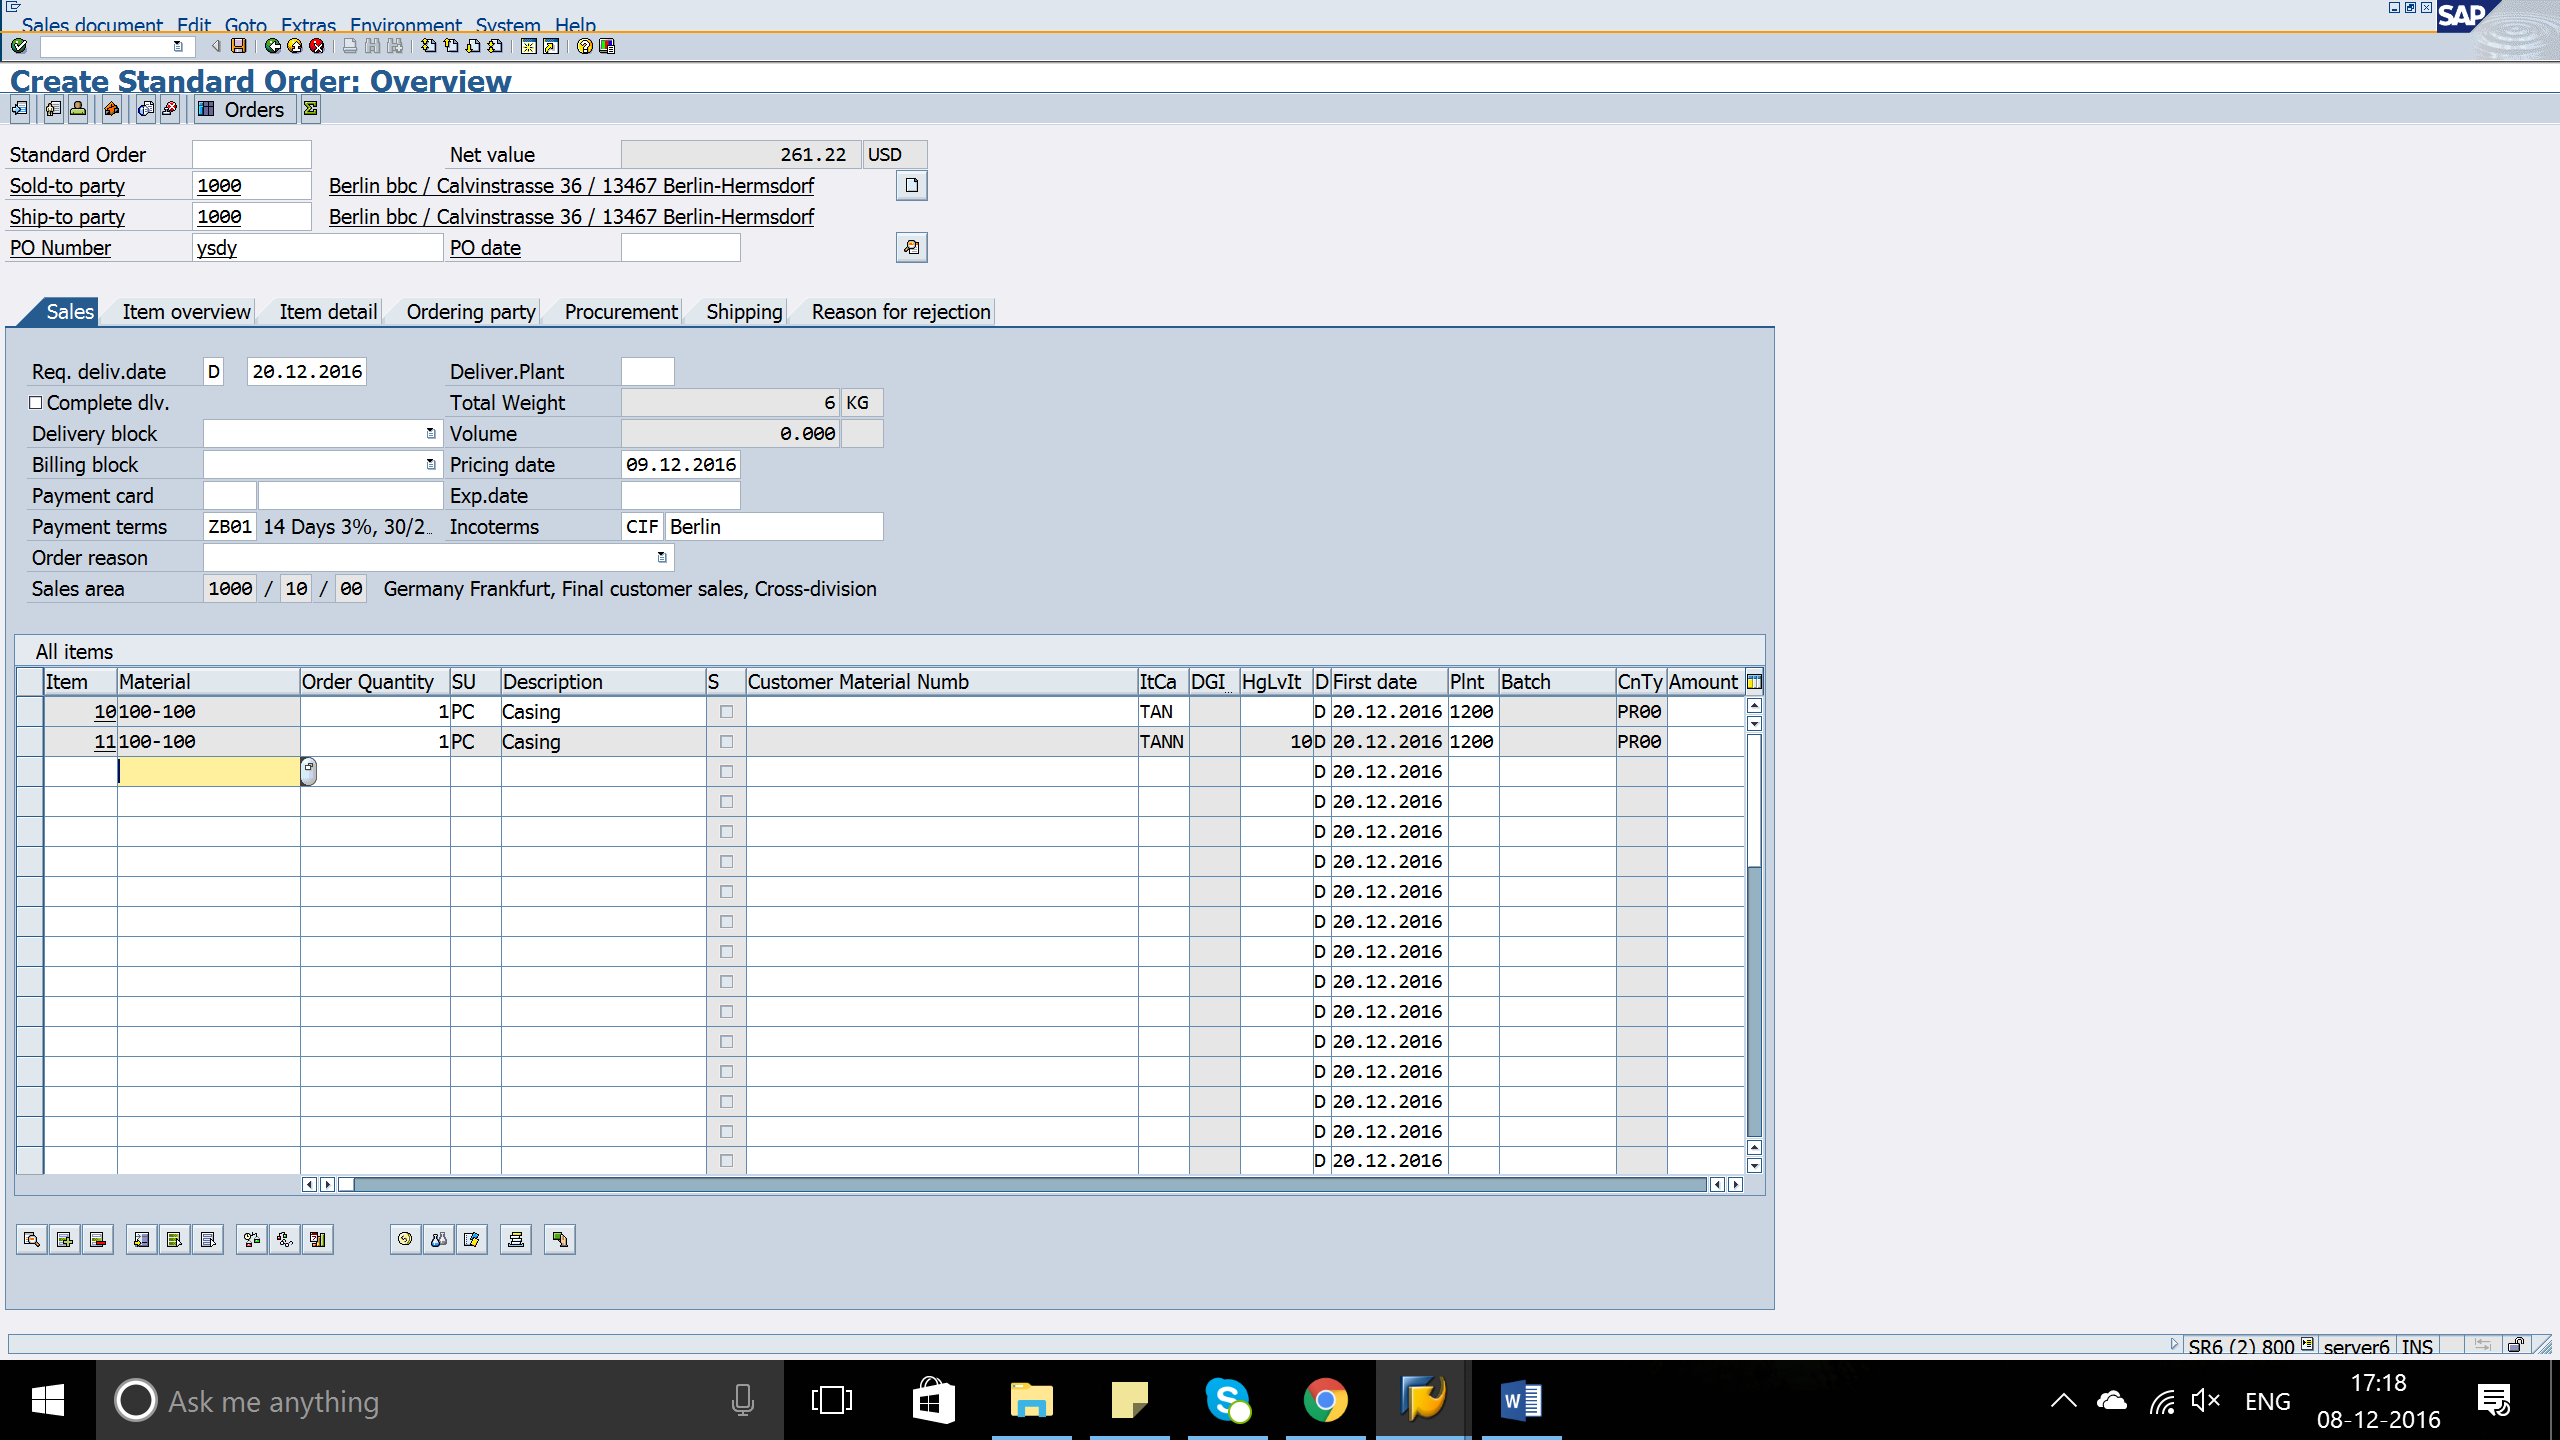 Create Standard Order in SAP erp